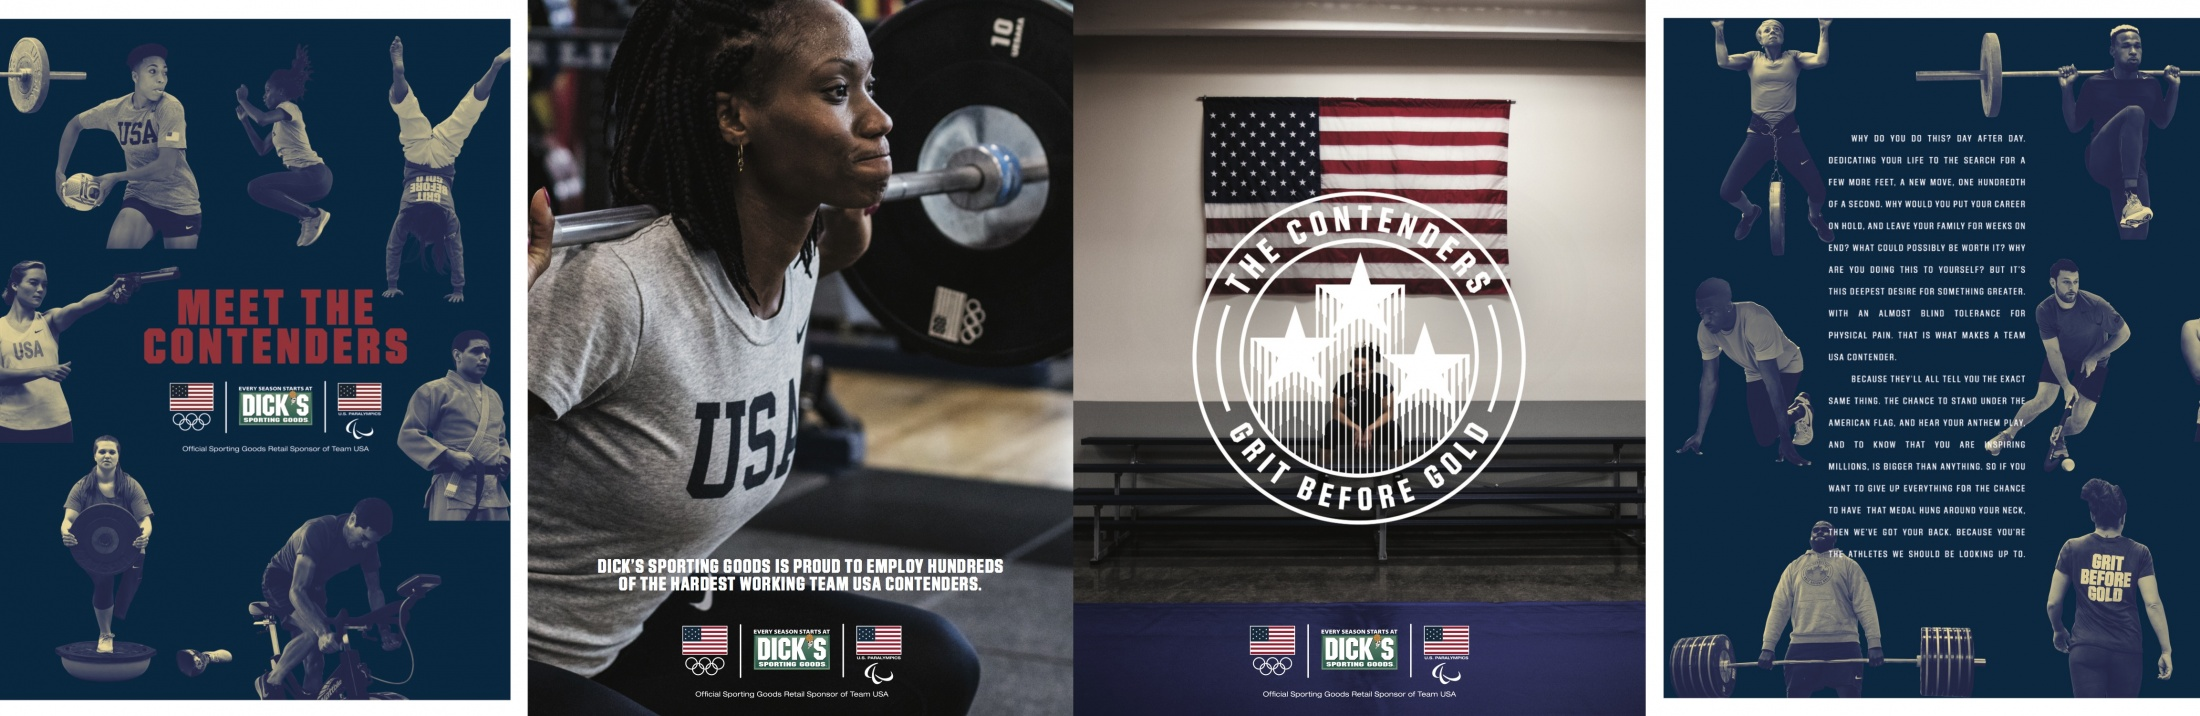 Thumbnail for Team USA & The Contenders